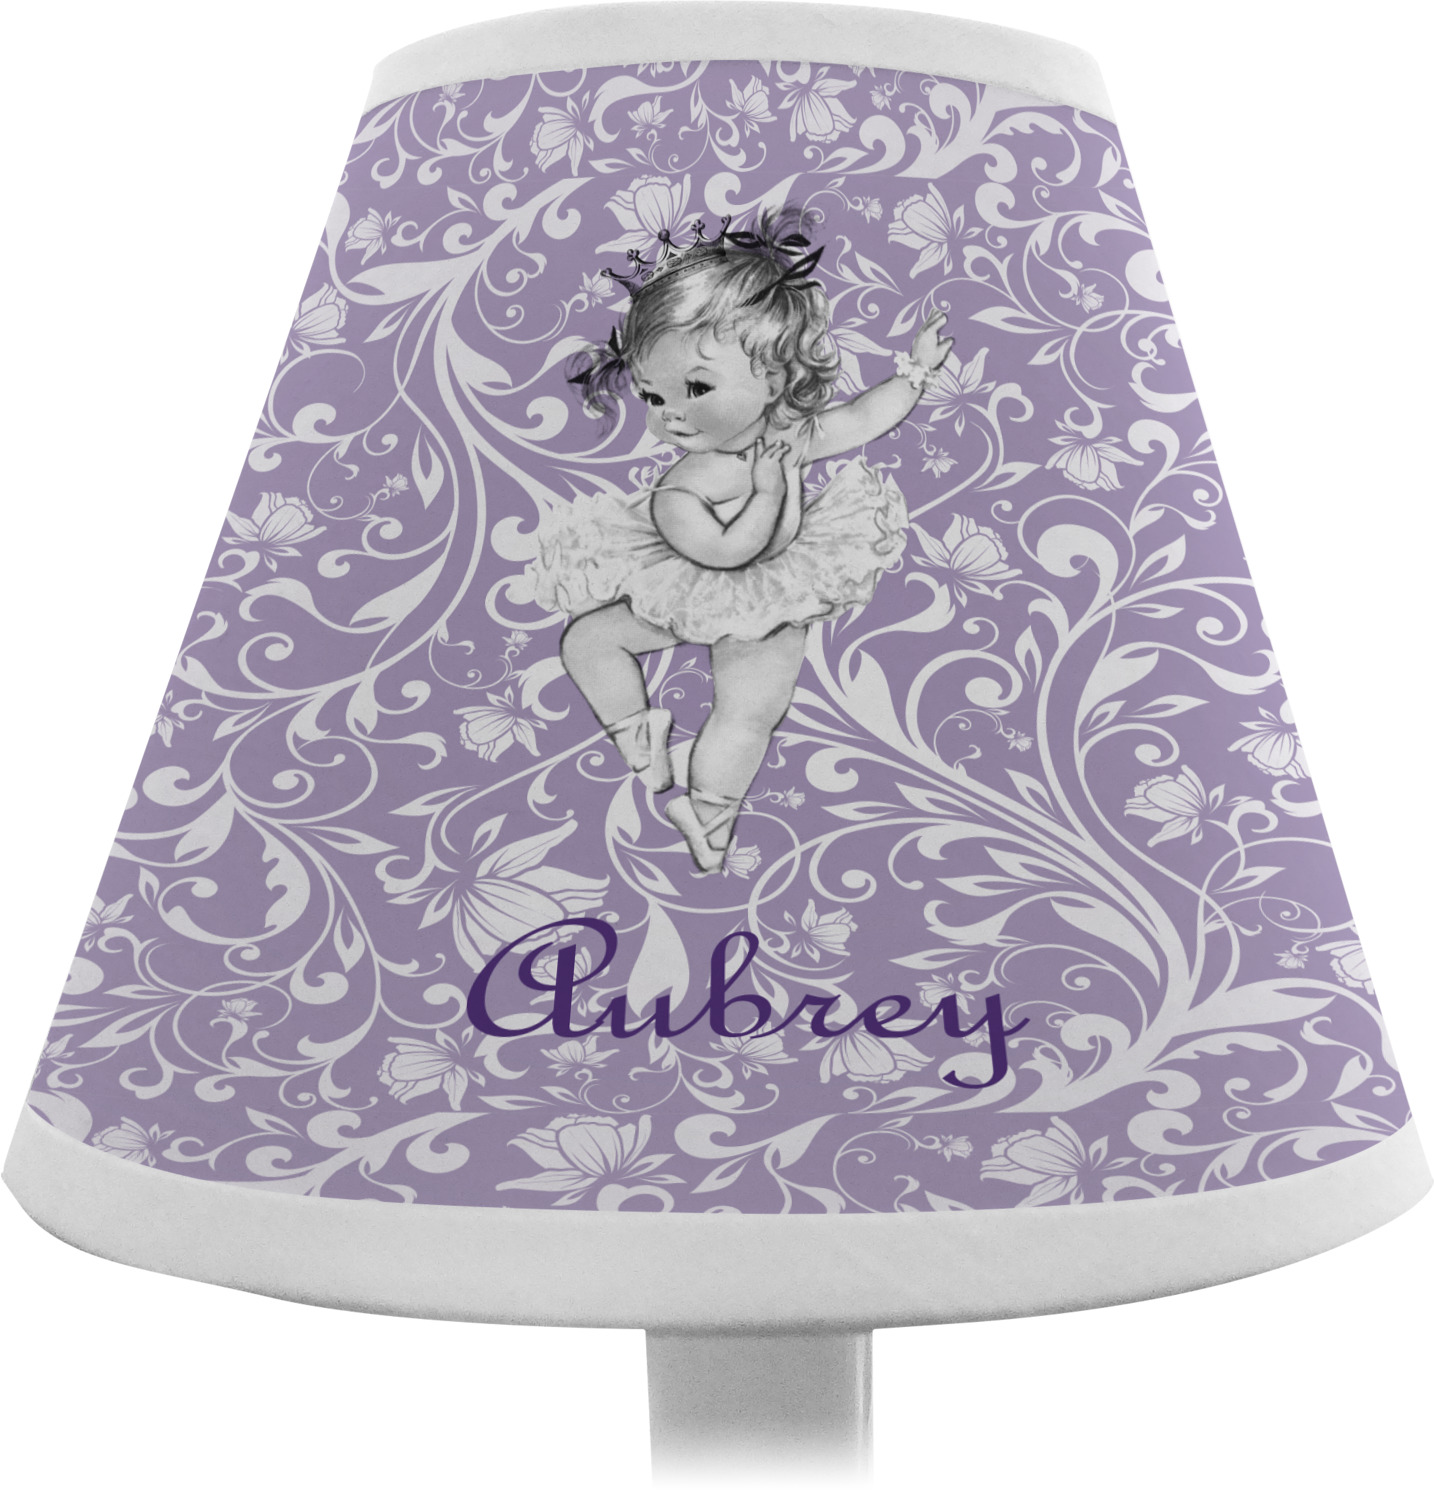 Ballerina Chandelier Lamp Shade Personalized